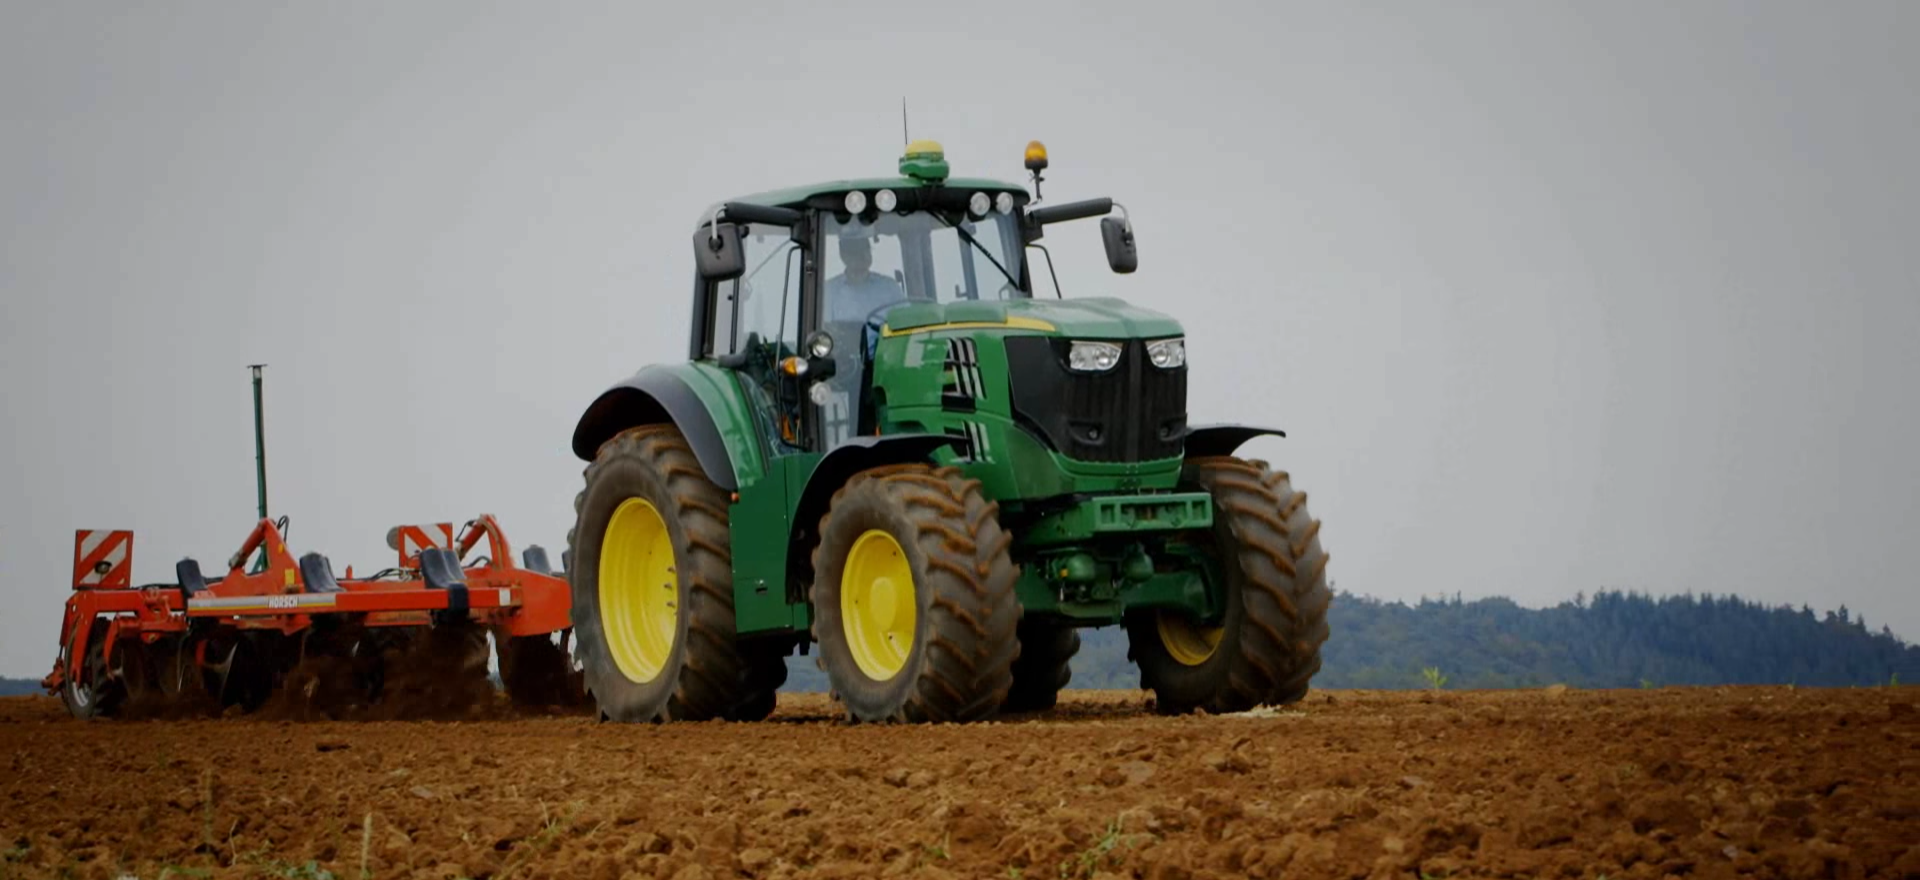 john deere unveils latest all electric tractor prototype for zero emission agriculture